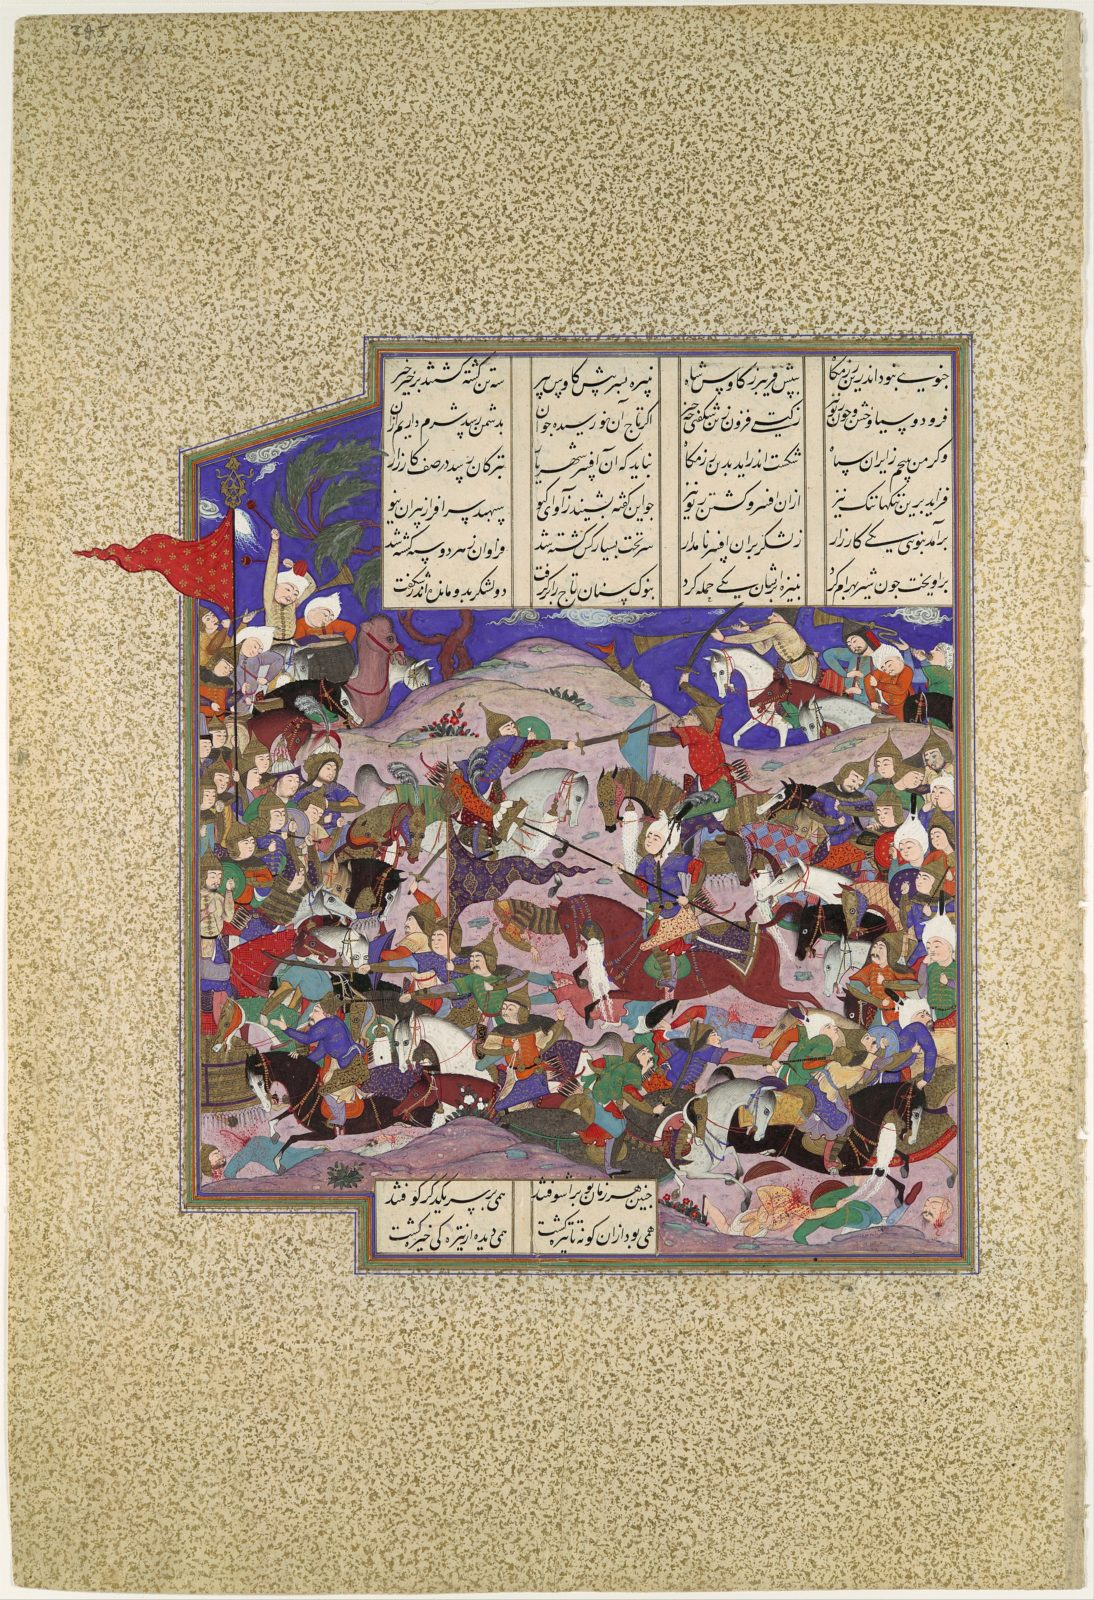 """""""Bahram Recovers the Crown of Rivniz"""", Folio 245r from the Shahnama (Book of Kings) of of Abu'l Qasim Firdausi, commissioned by Shah Tahmasp"""